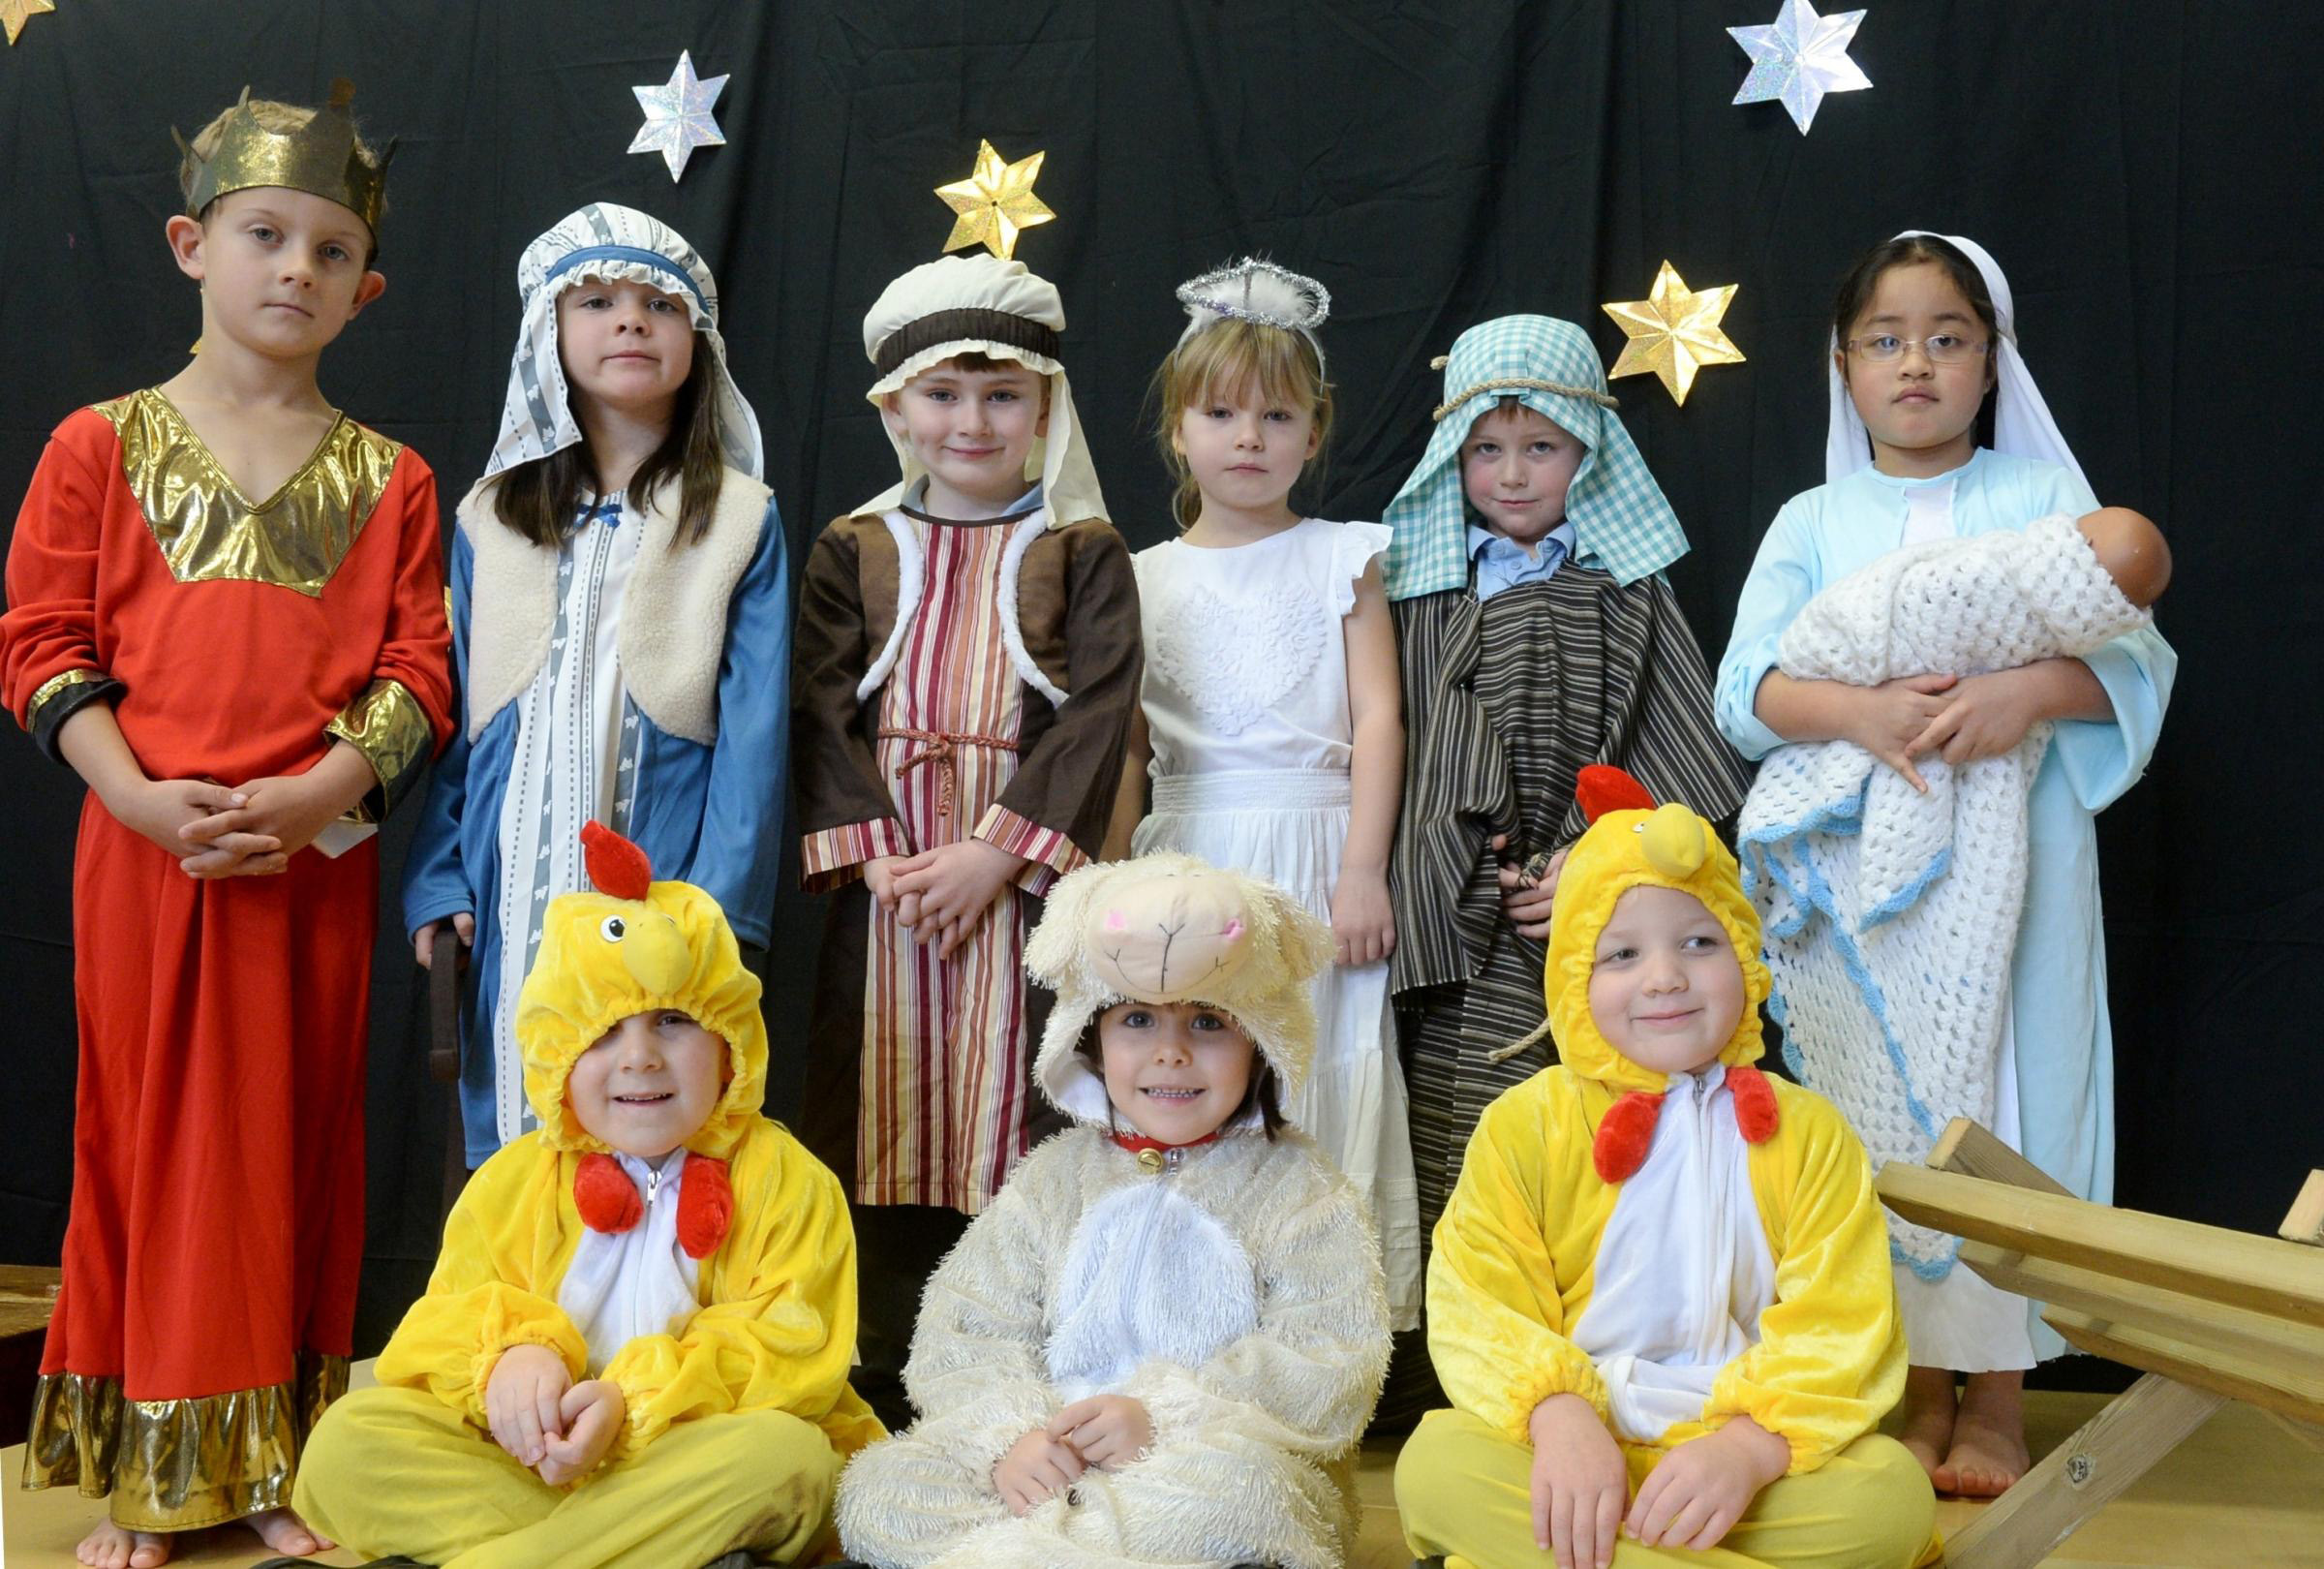 Send us your school nativity pictures